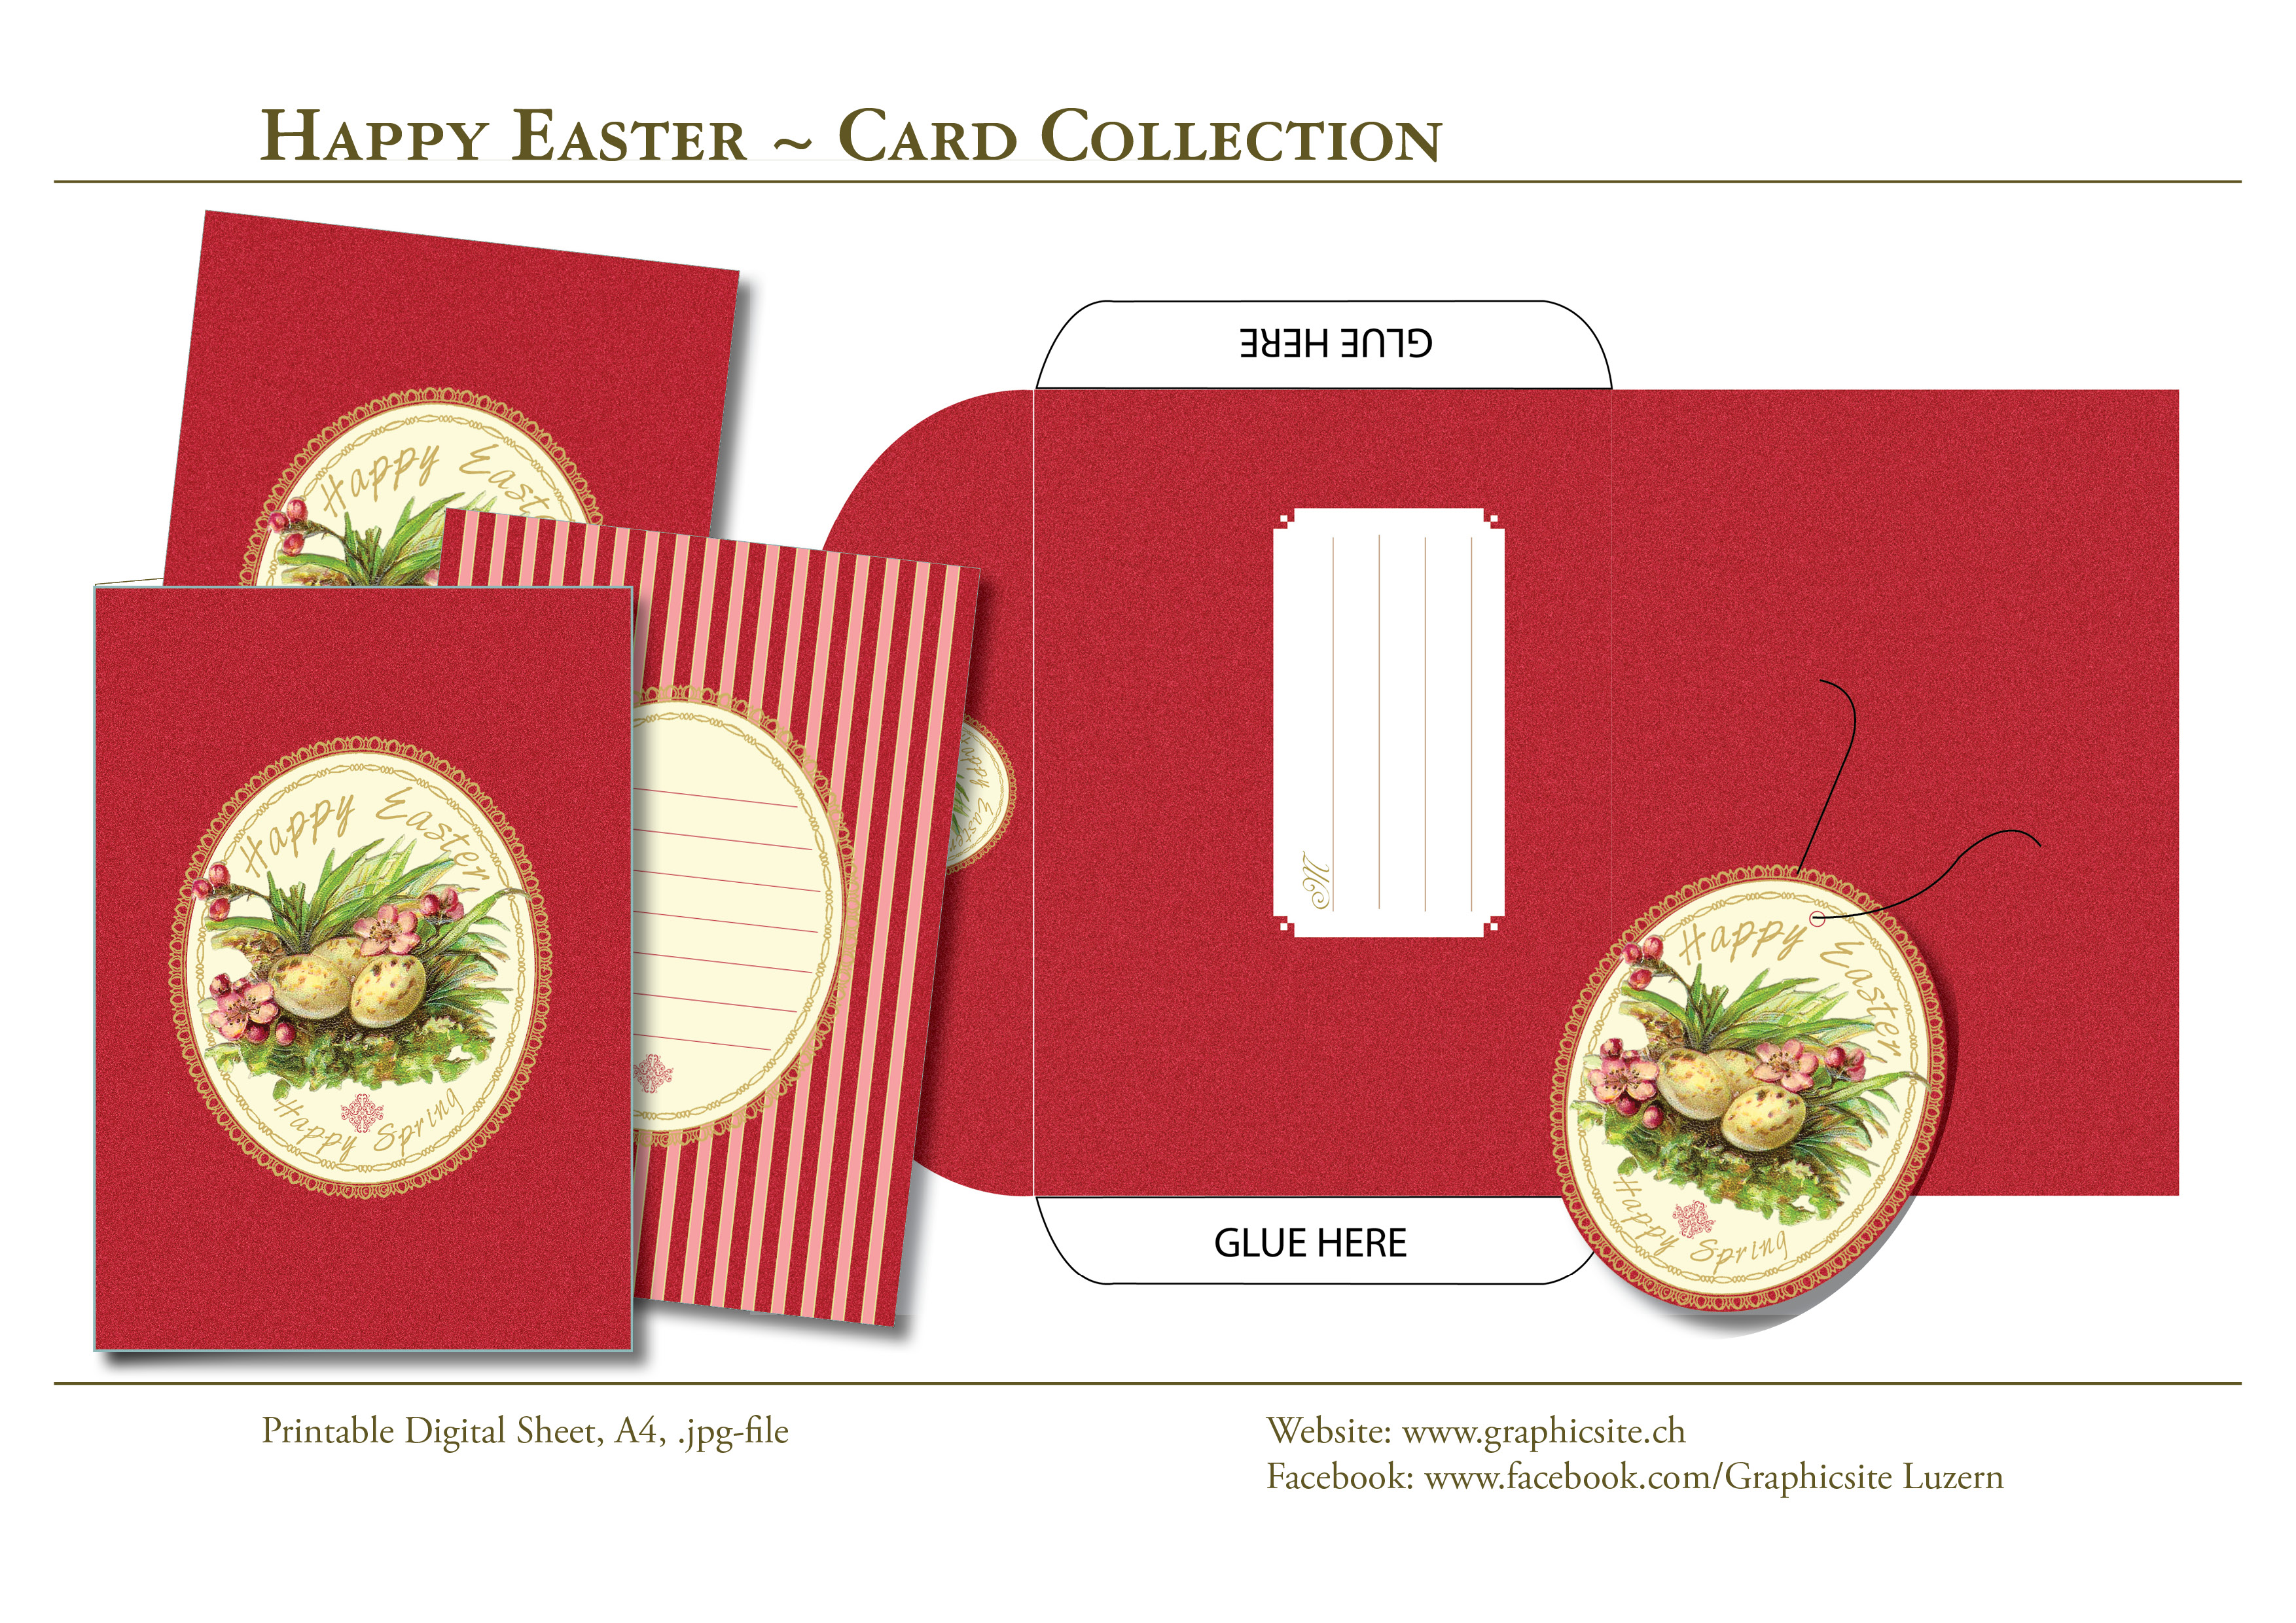 Printable Digital Sheets - Card Collection - DIY Printing, Easter2, download, online, shopping, Graphic Design, Luzern,